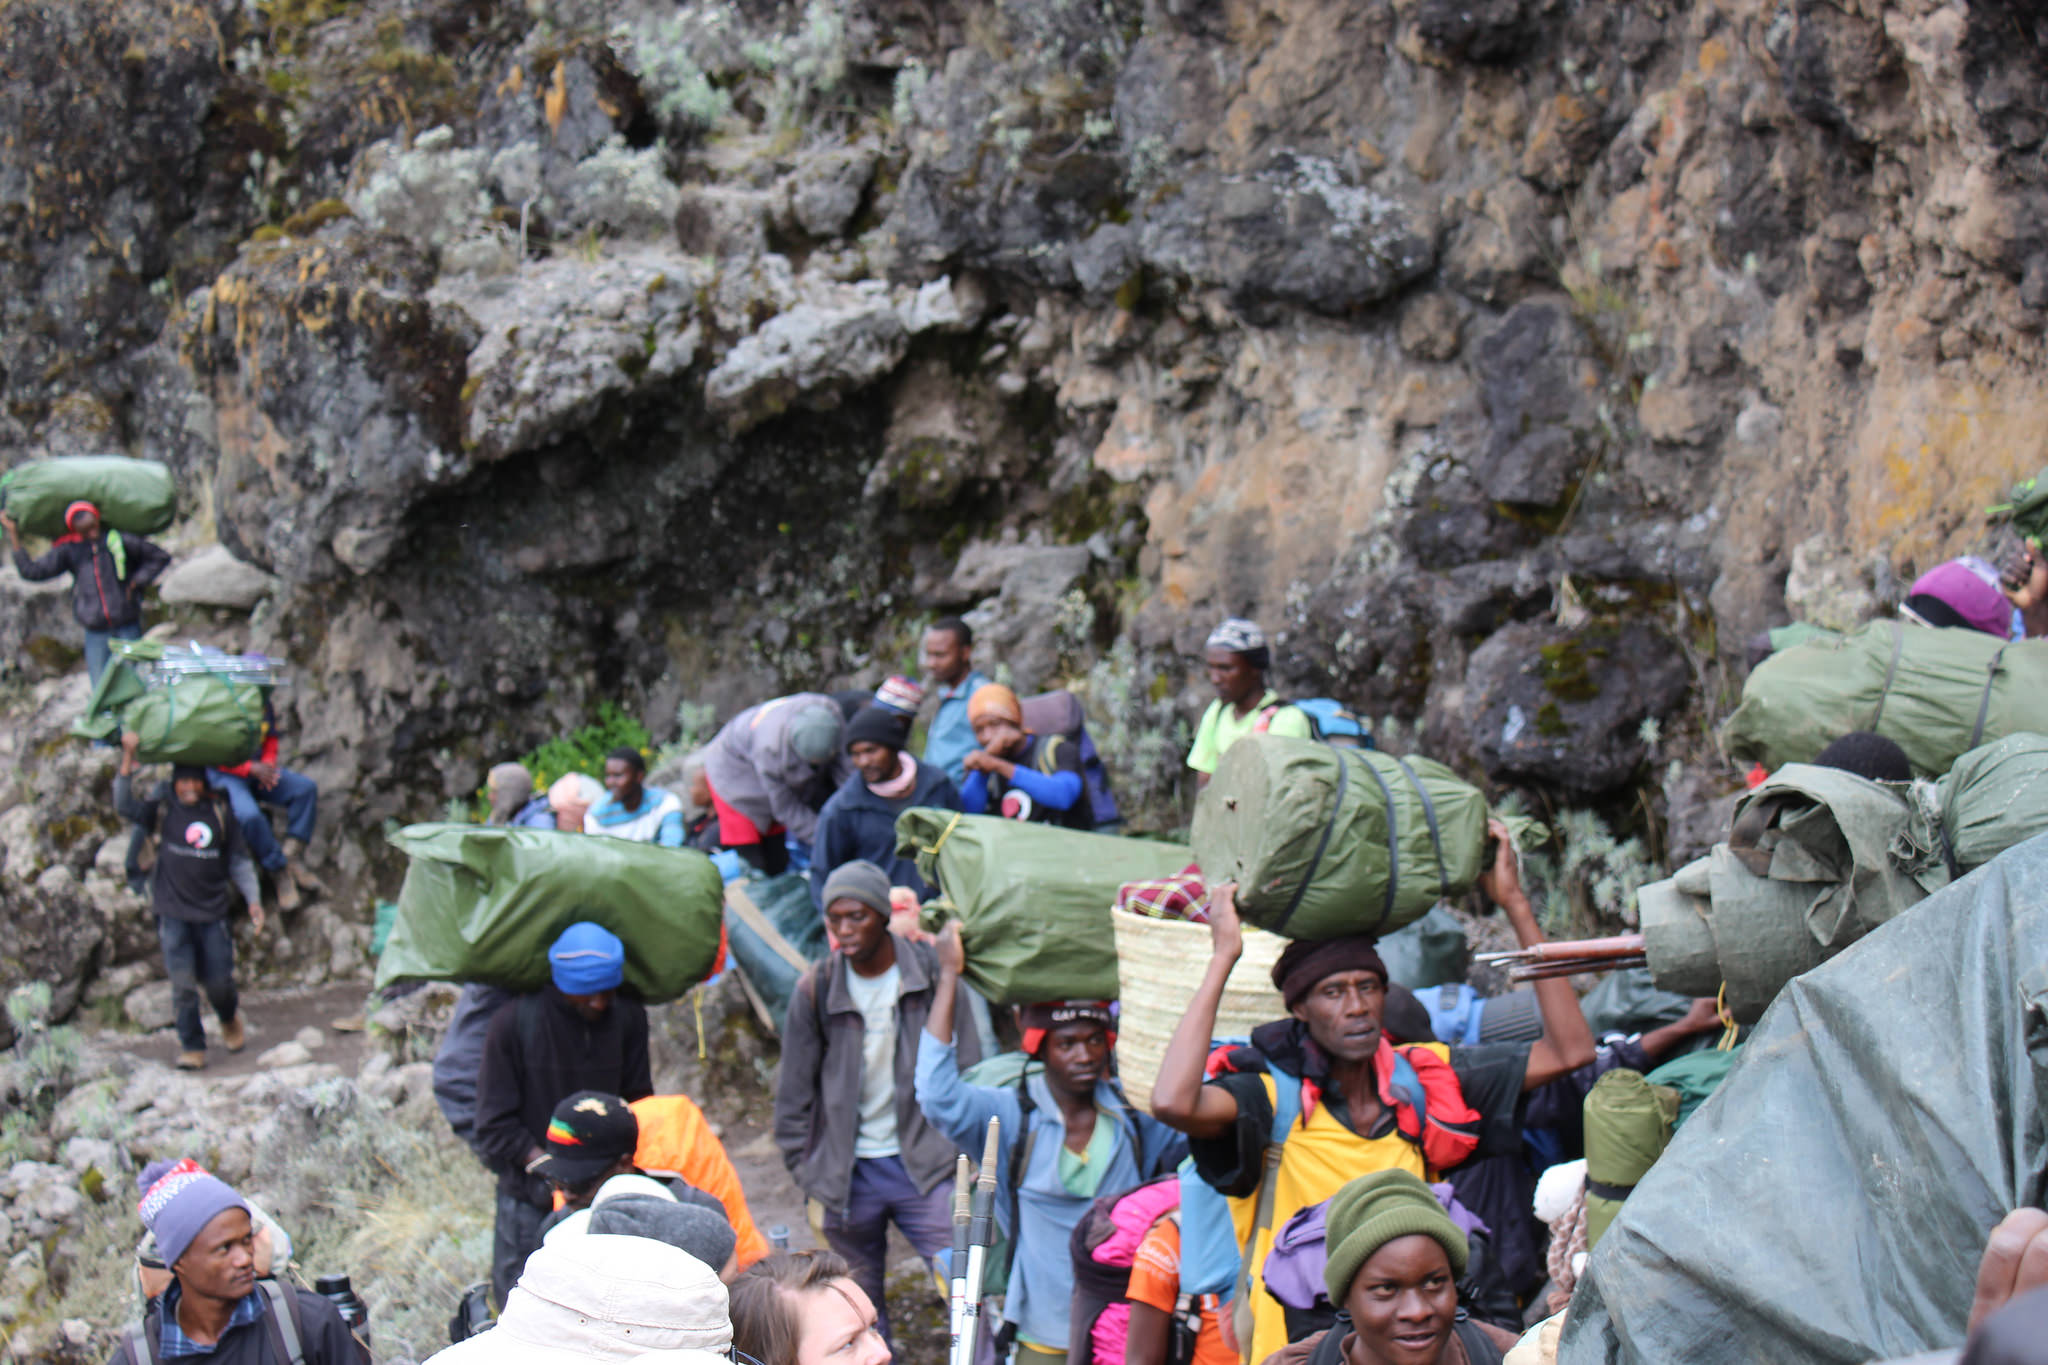 The guides and porters work hard on the mountain